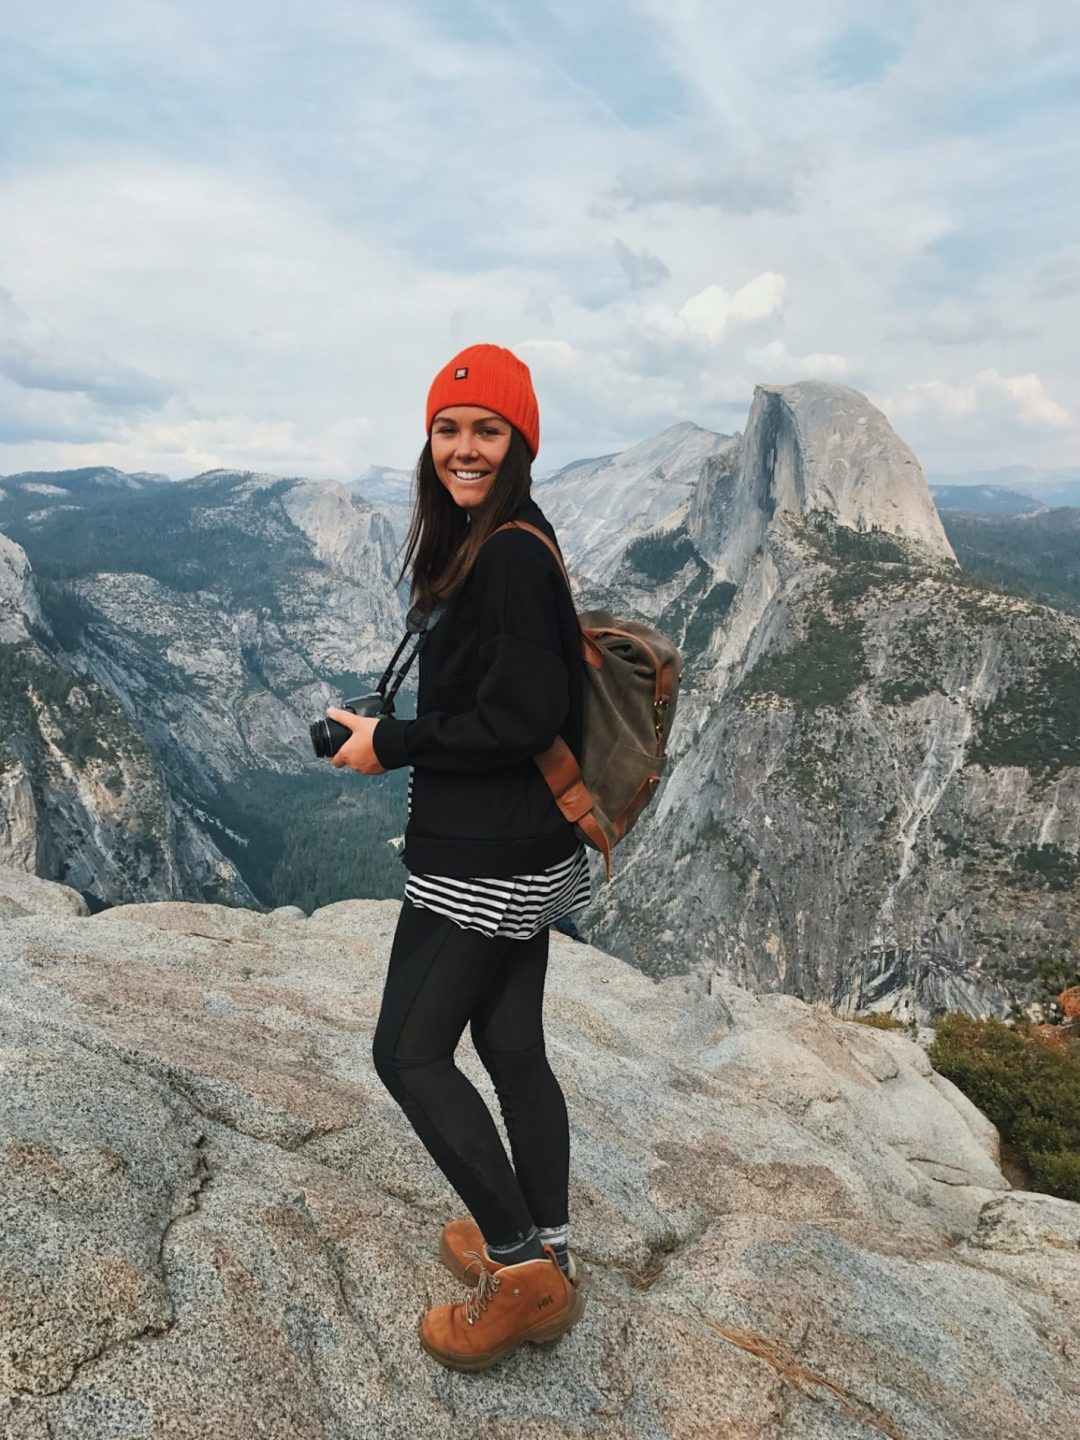 A girl in a red beanie and hiking boots stands on rock at Half Dome in Yosemite National Park